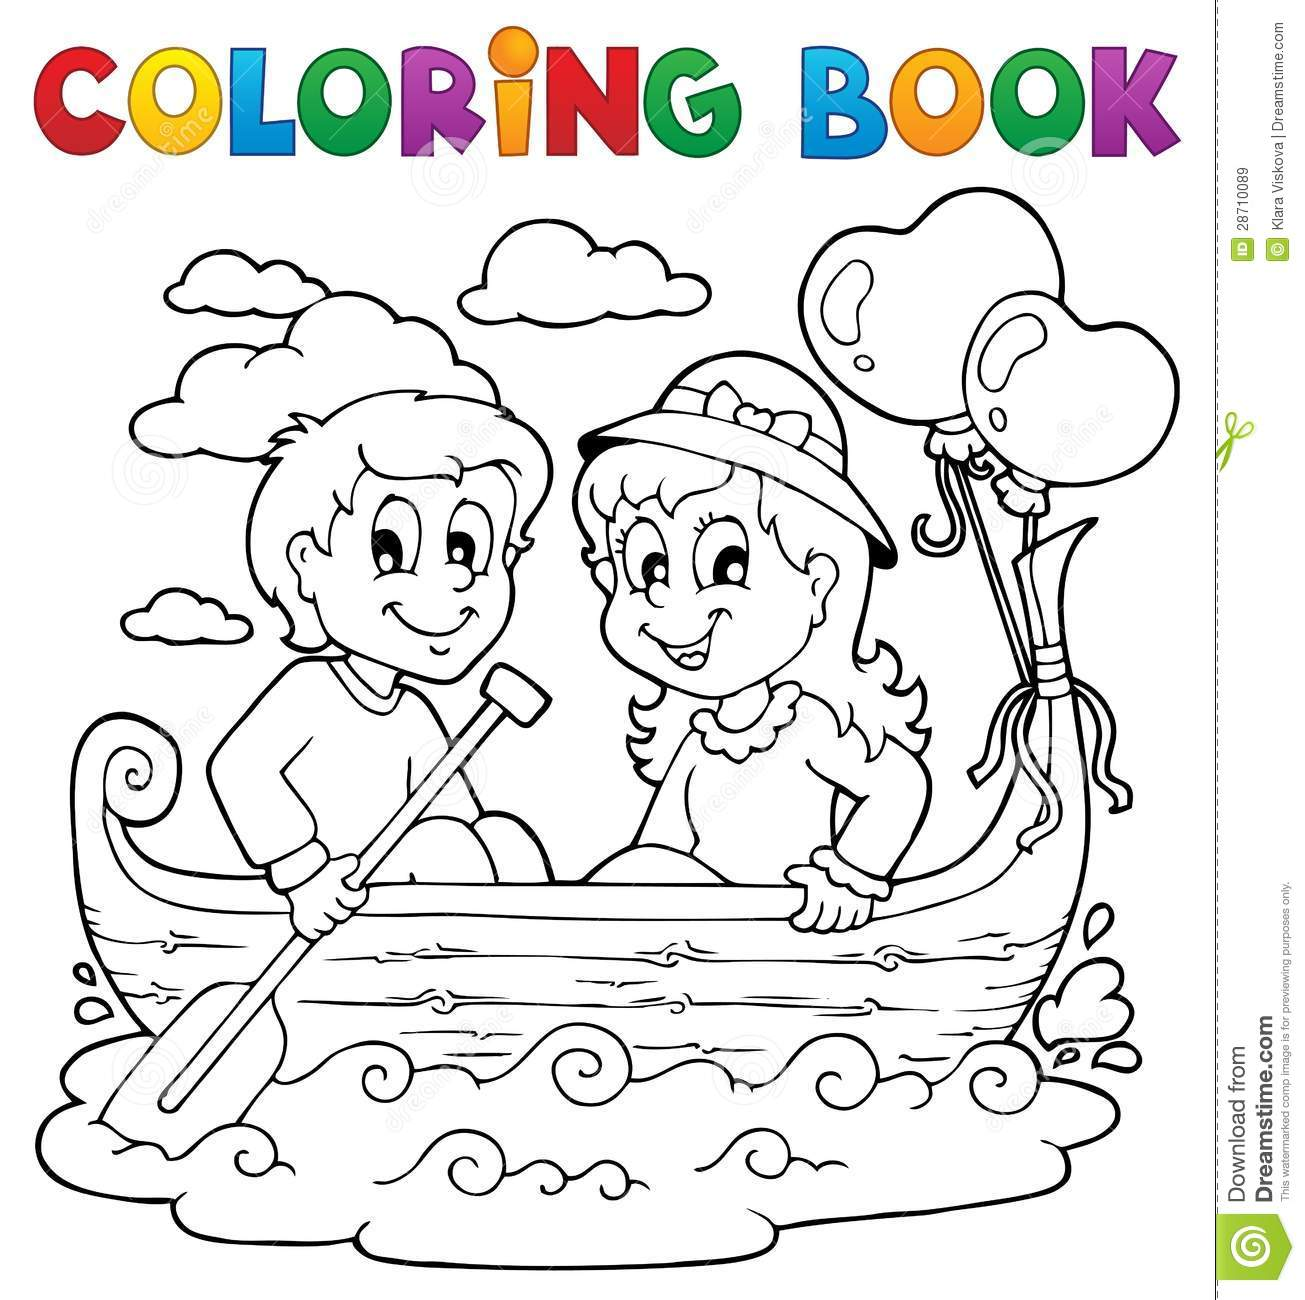 Coloring Book Love Theme Image 1 Stock Vector - Illustration of ...